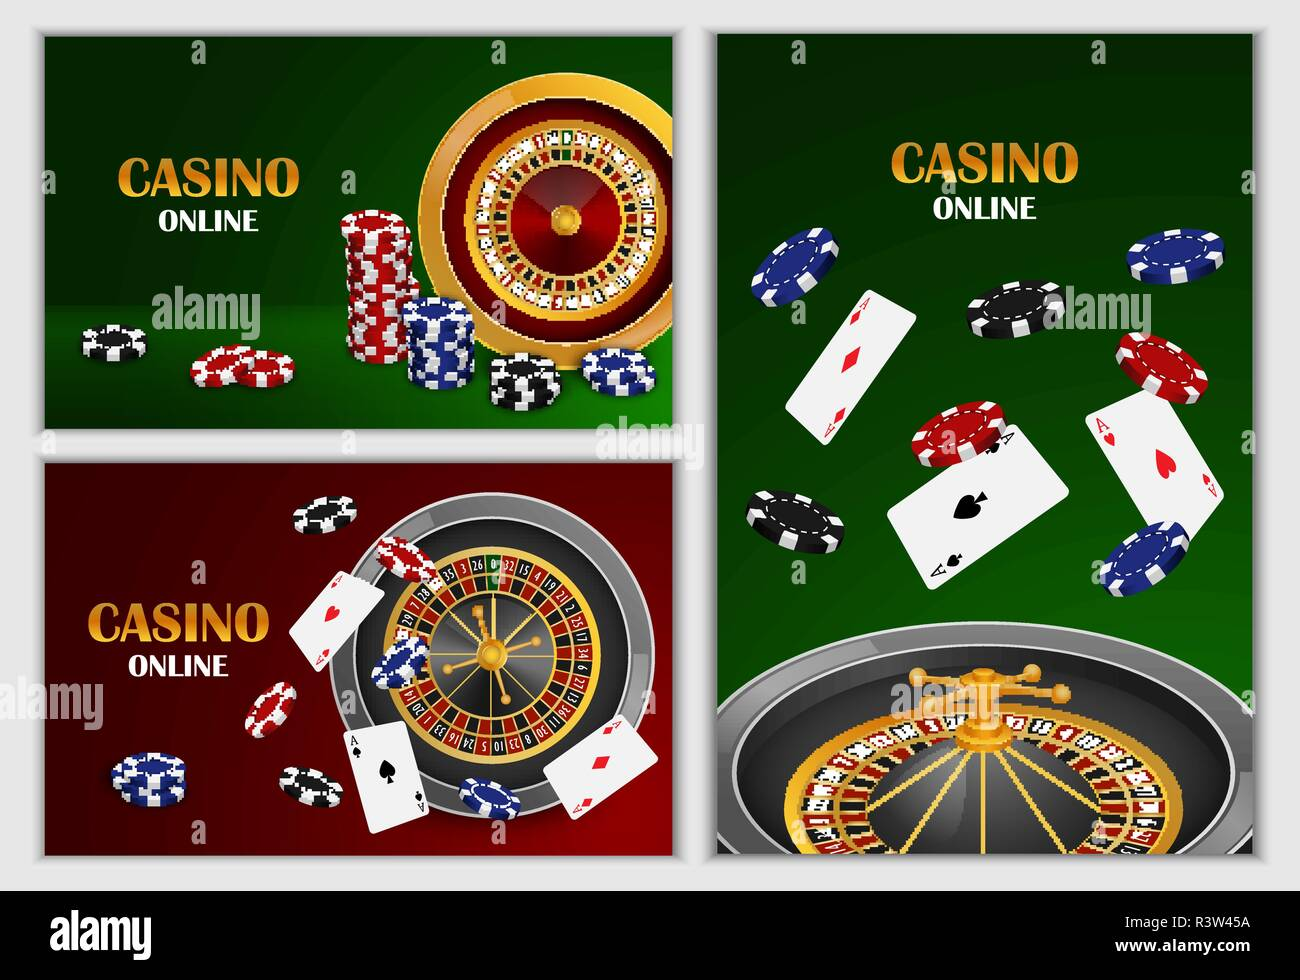 Roulette wheel fortune spin game banner concept set. Realistic illustration of 3 roulette wheel fortune spin game banner horizontal concepts for web - Stock Image